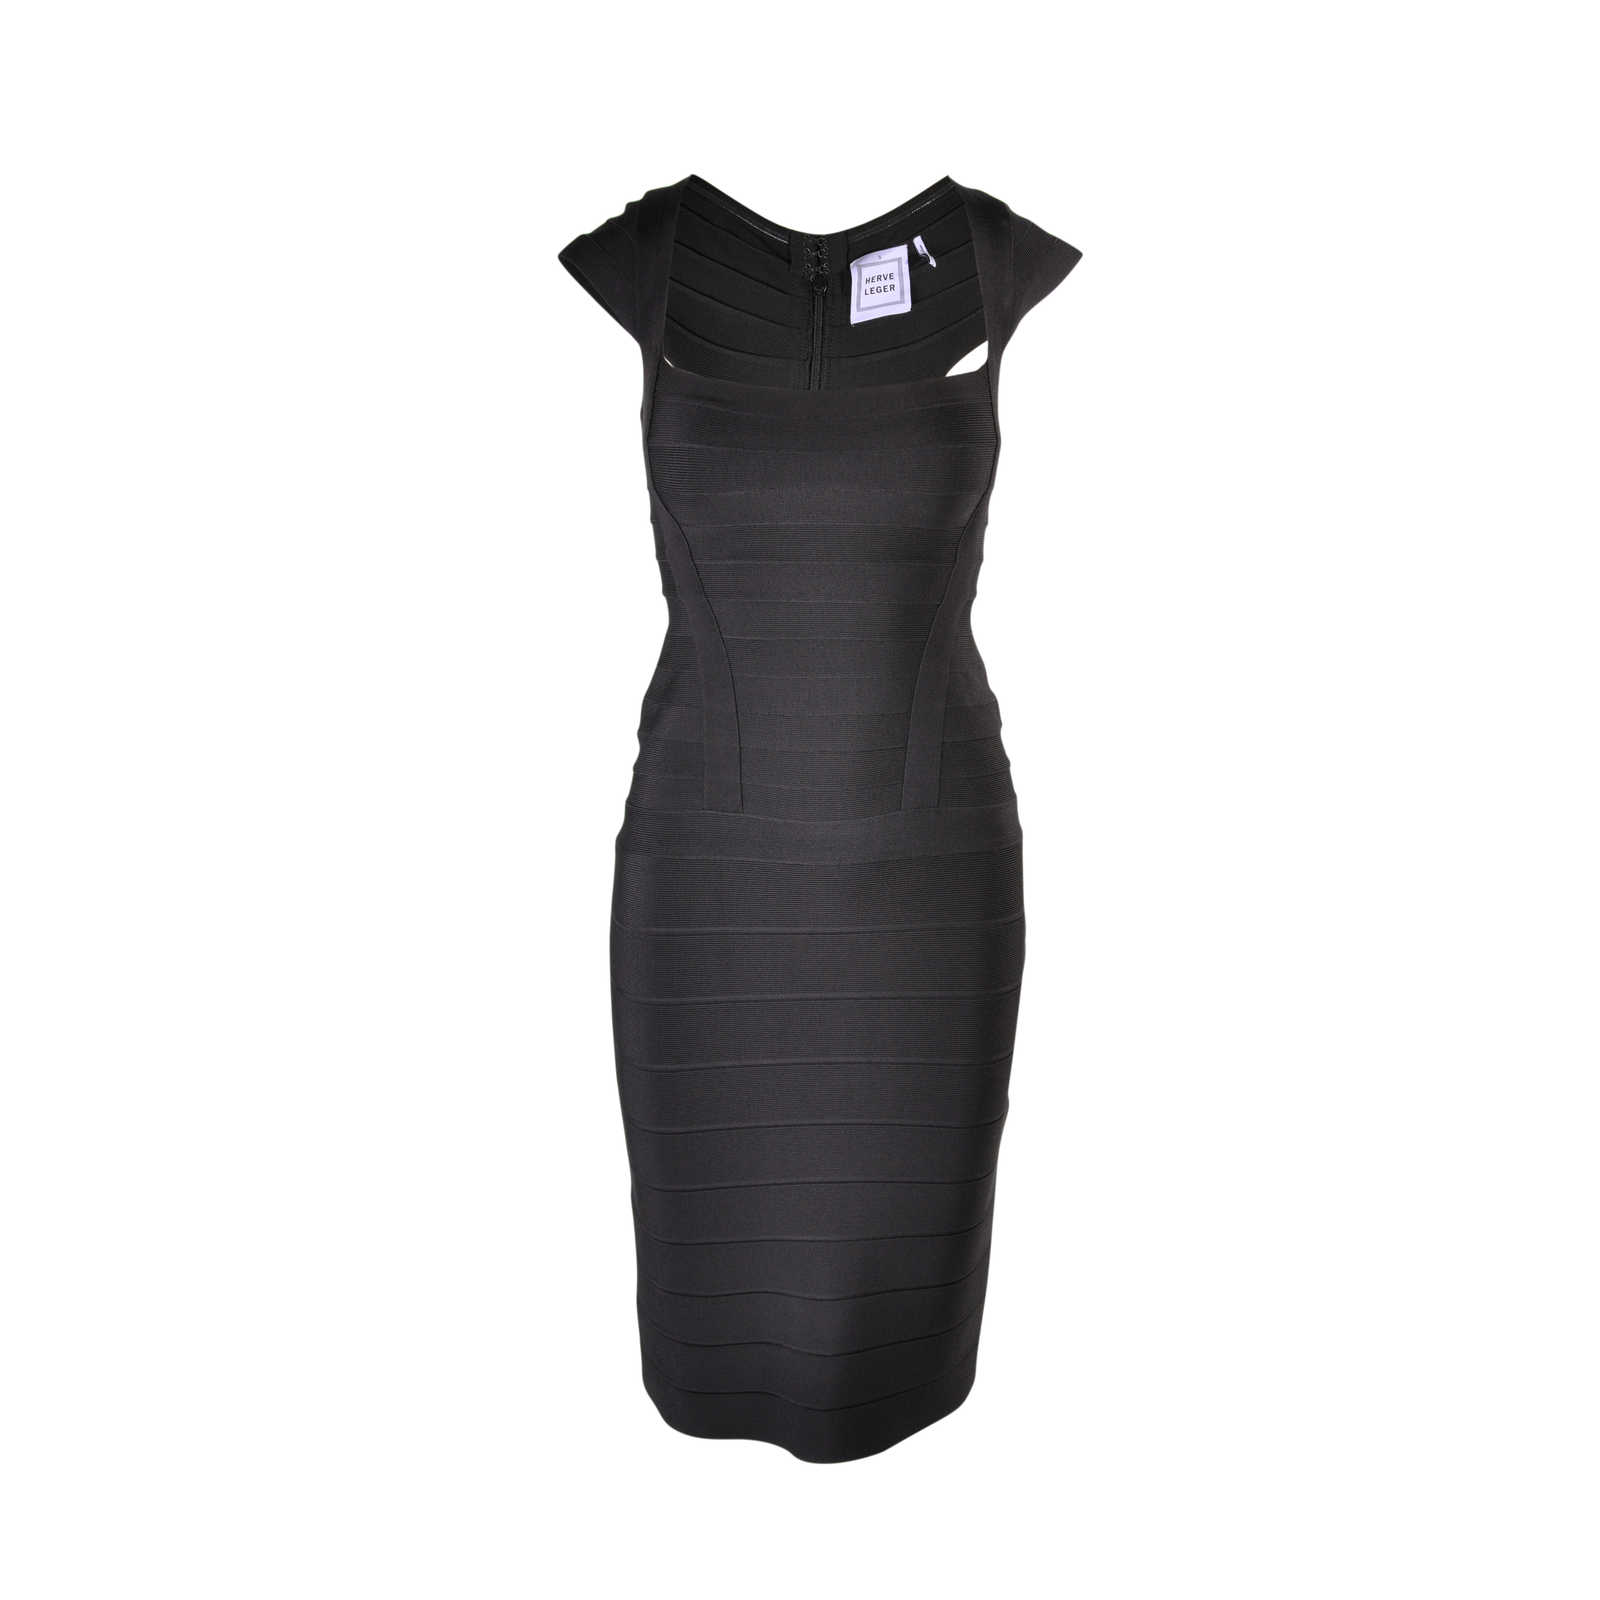 a1432d18ca8bb Authentic Second Hand Hervé Leger Black Sheath Bandage Dress  (PSS-077-00003) ...